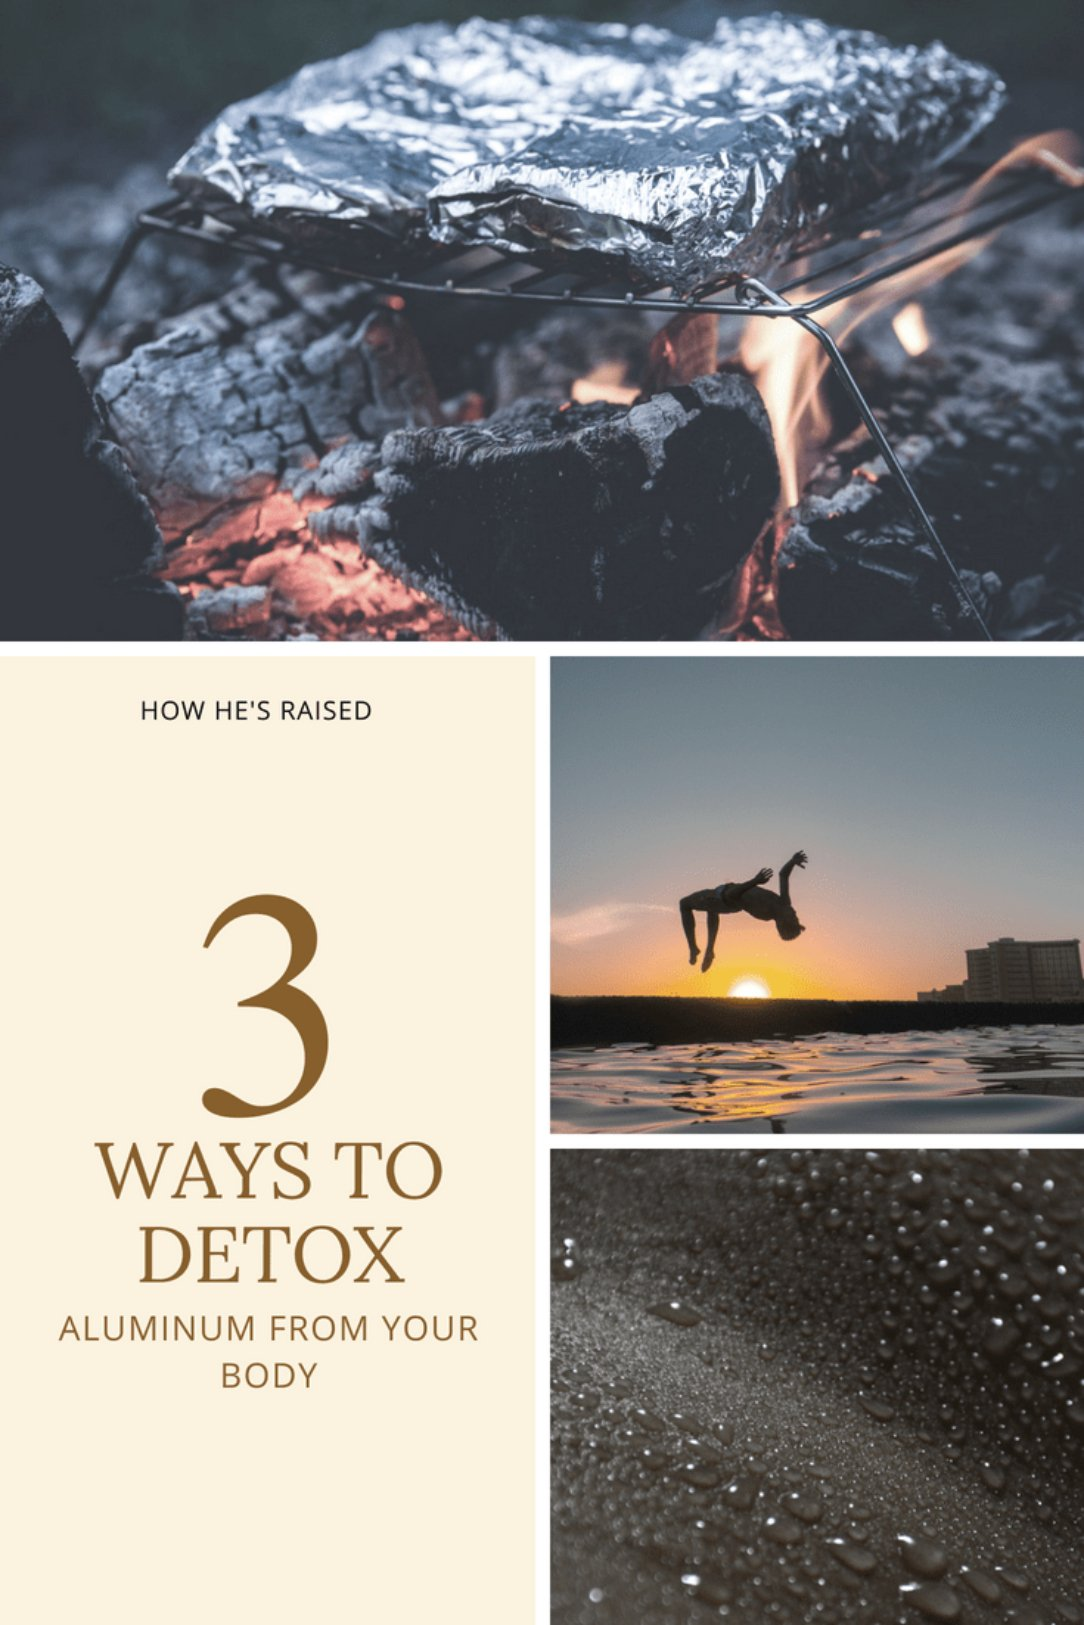 3 Ways to Detox Aluminum from Your Body